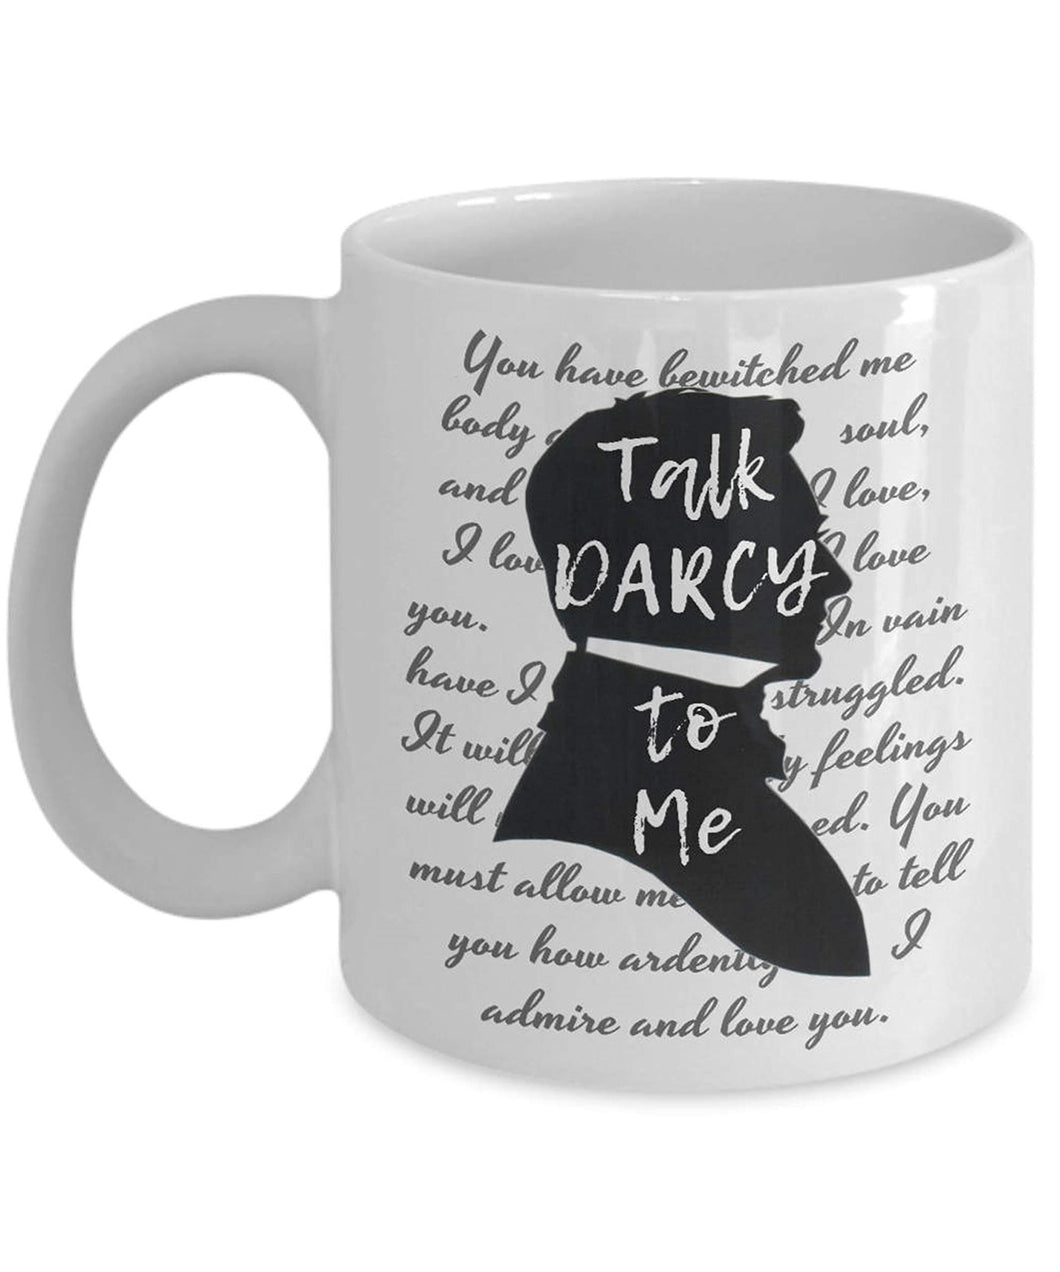 Jane Austen Talk Darcy To Me Mug